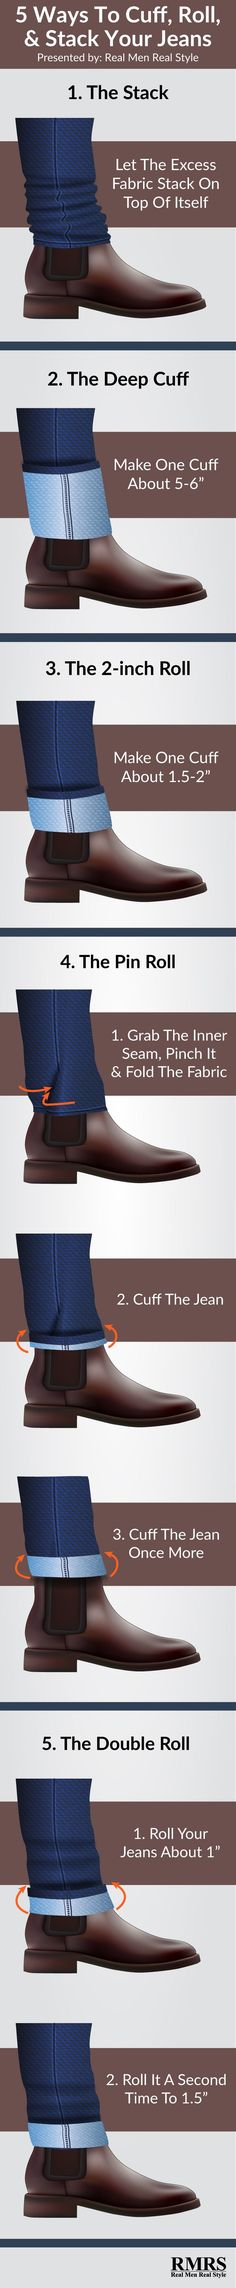 The Right Way To Cuff Jeans Infographic is part of Cuffed jeans - This infographic walks you through 5 easy ways to cuff, roll and stack your jeans Make your denim more stylish! Casual Outfits, Men Casual, Fashion Outfits, Moda Indie, Look 2015, Style Masculin, Herren Outfit, Cuffed Jeans, Denim